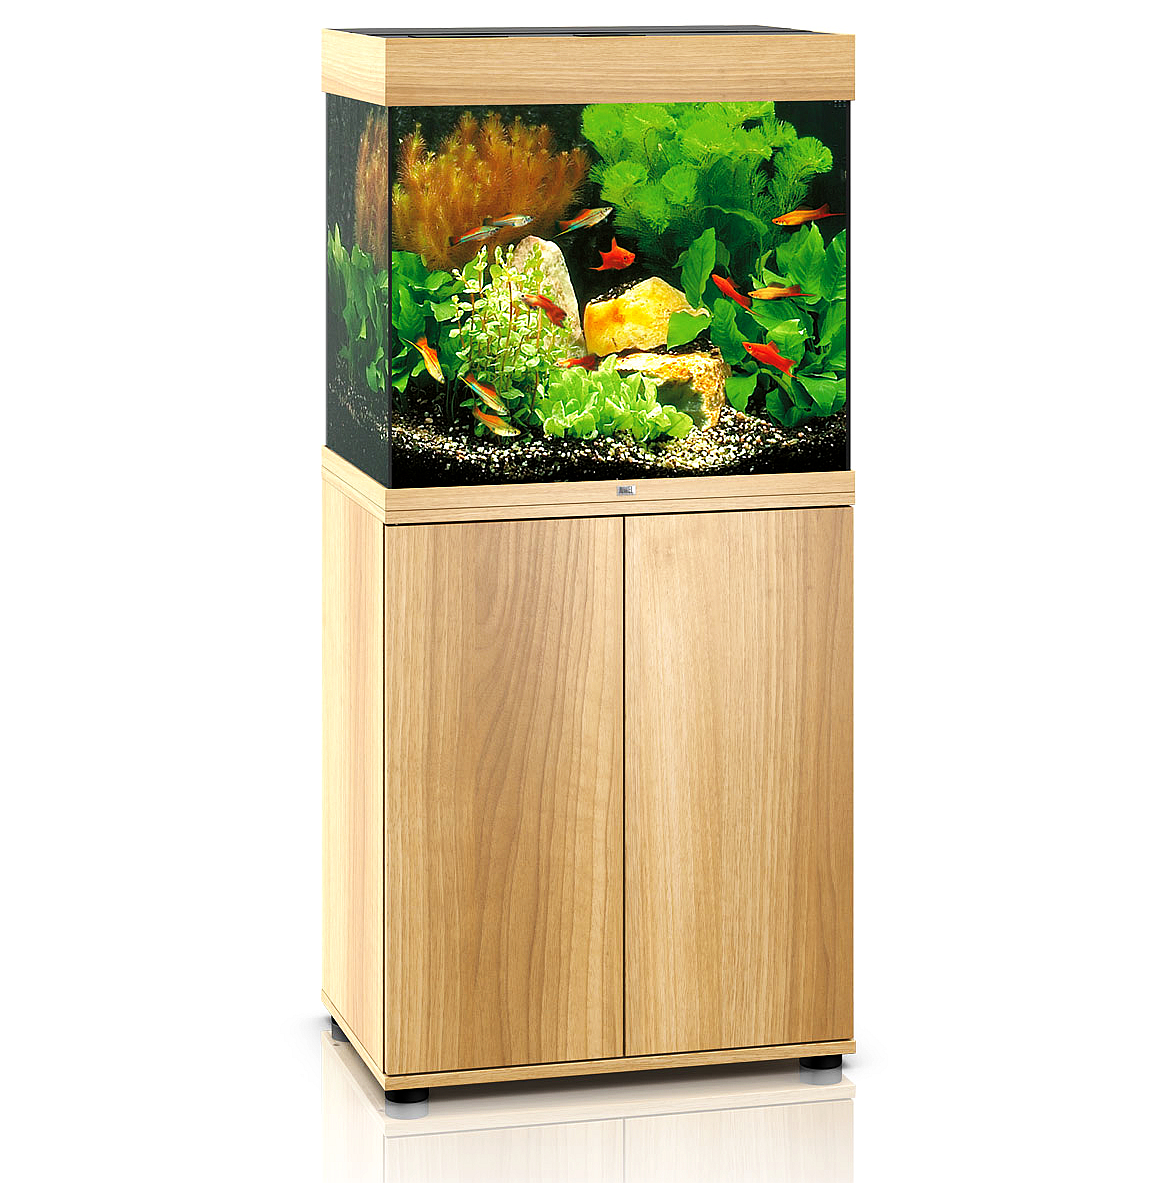 juwel aquarium unterschrank sbx lido 120 helles holz. Black Bedroom Furniture Sets. Home Design Ideas